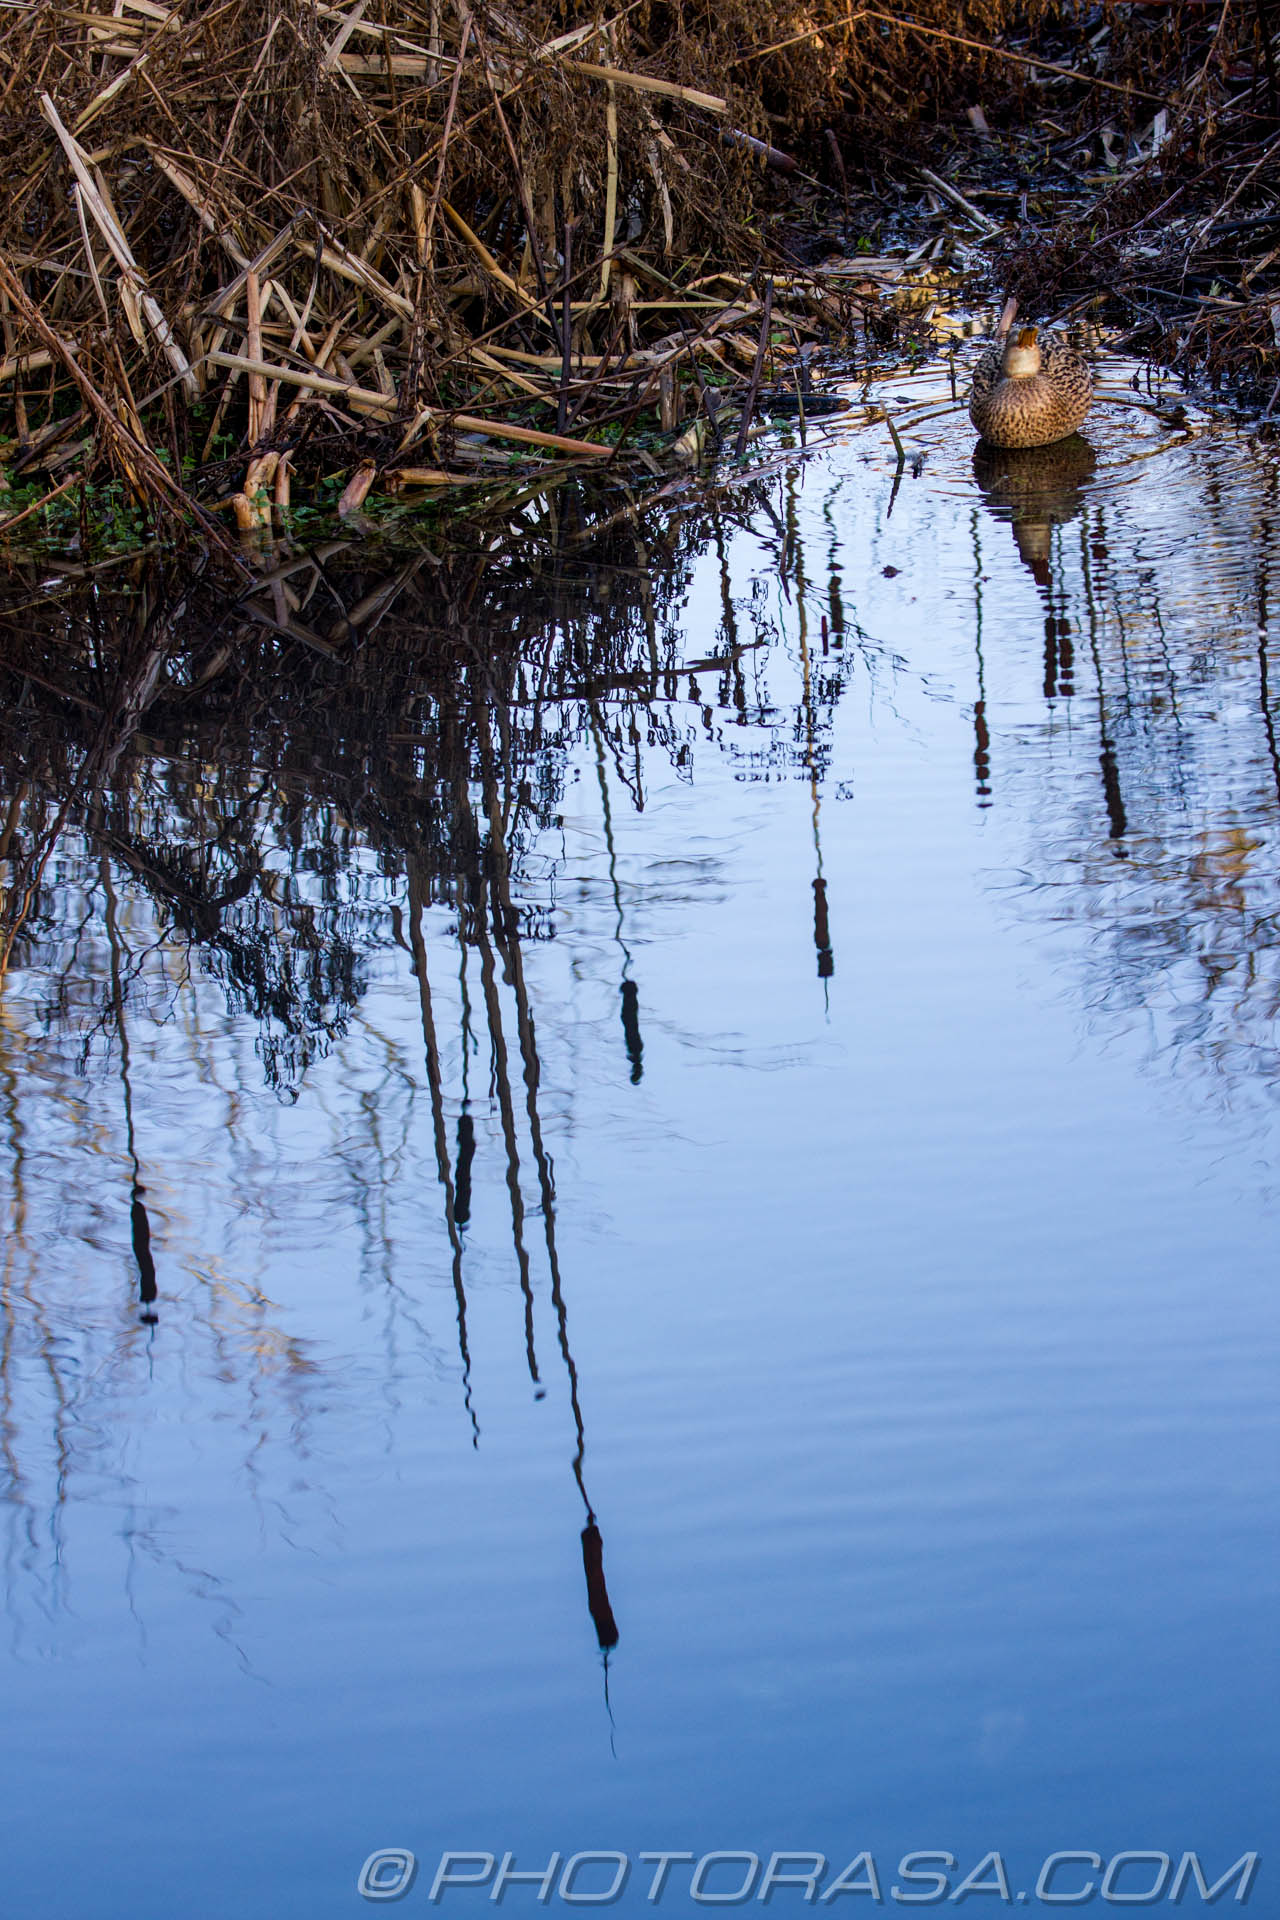 http://photorasa.com/ducks-bullrushes/duck-by-water-and-bullrushes-reflection/